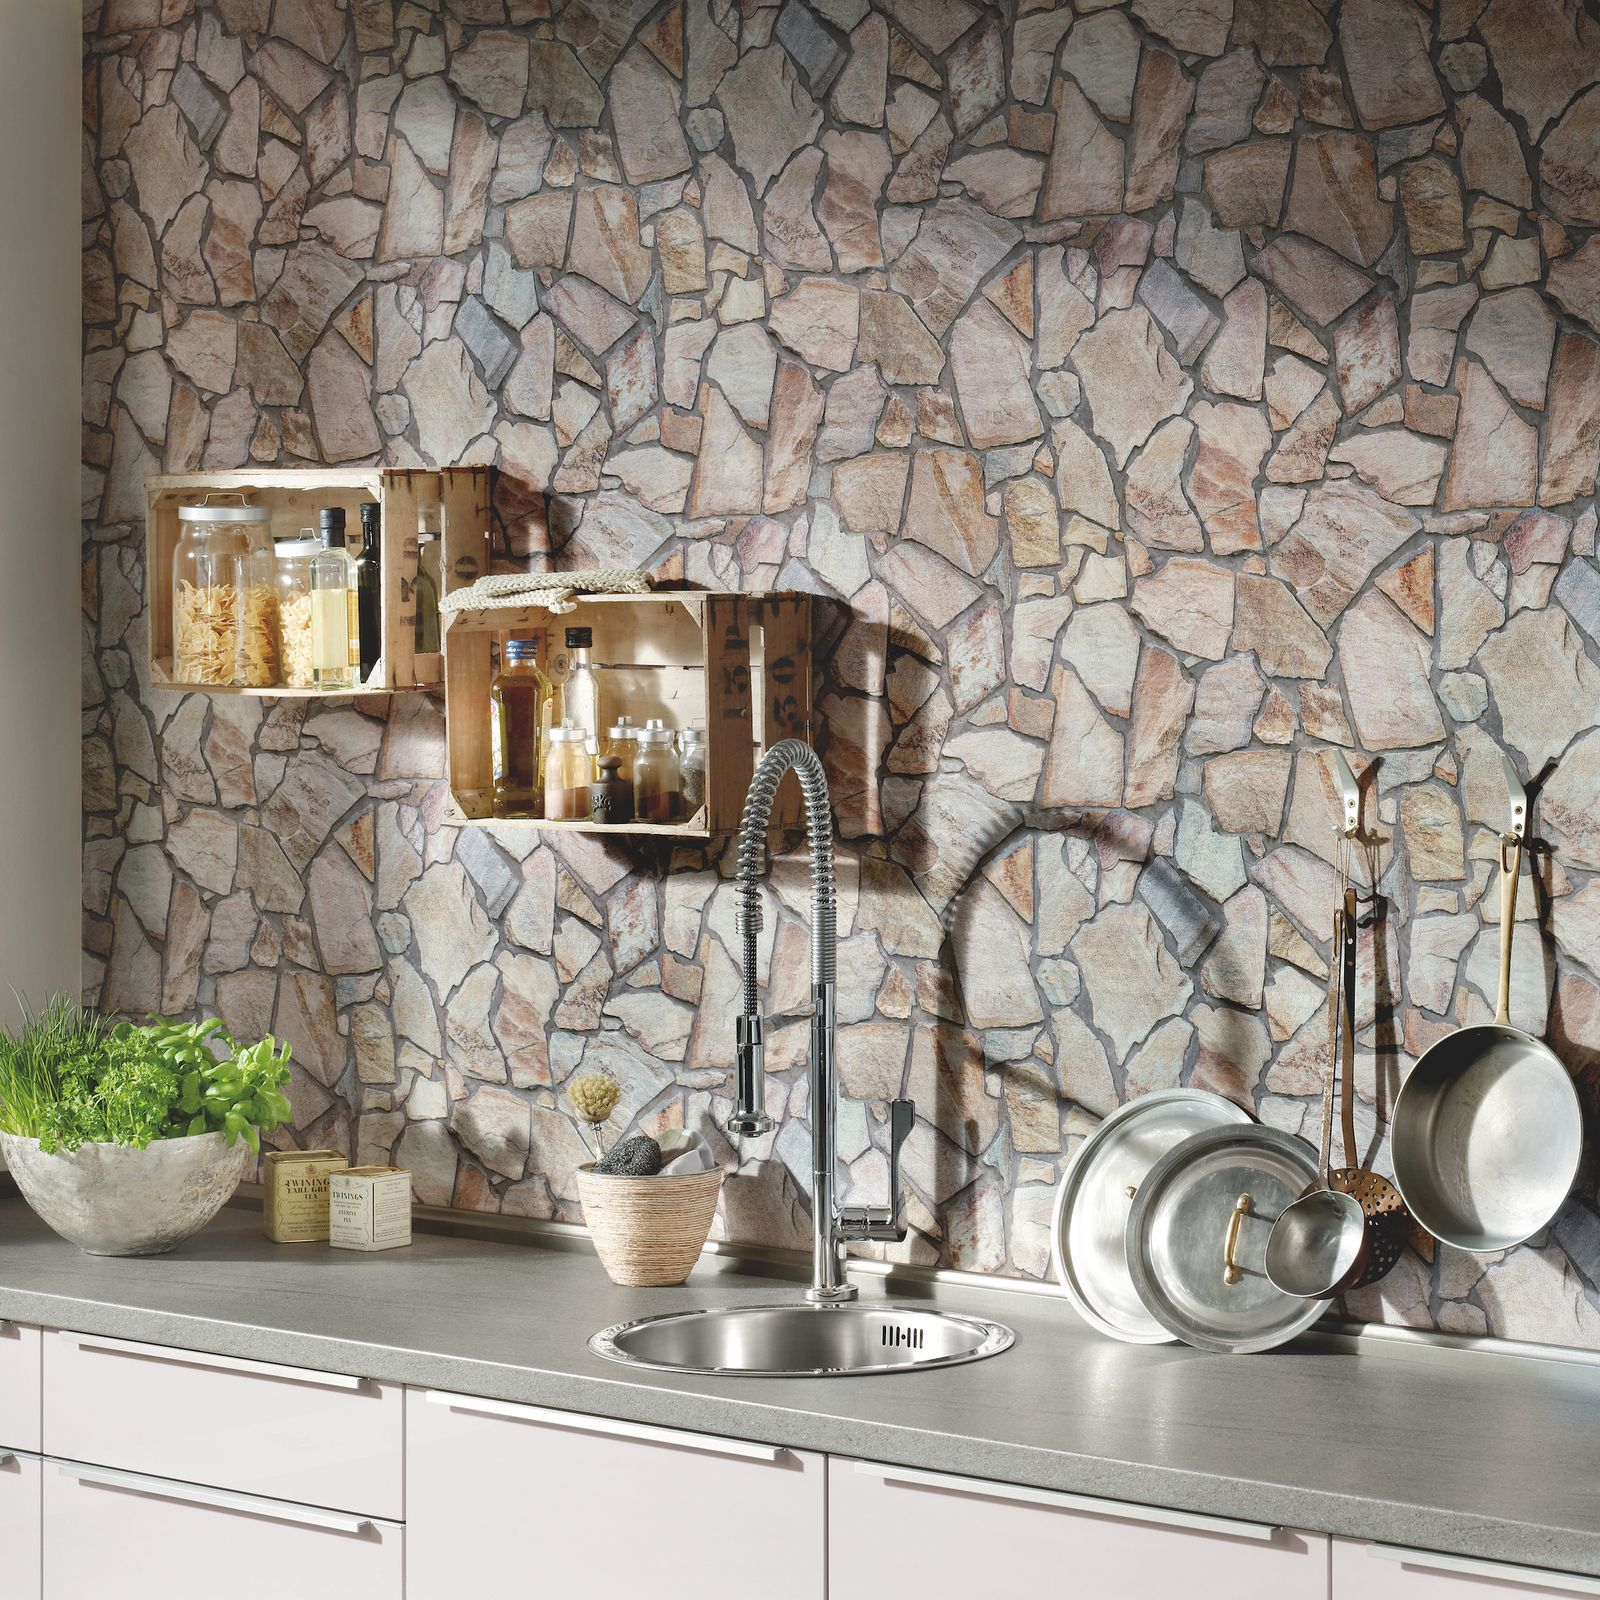 Why It S A Good Idea To Use Wallpaper In The Kitchen According To This Interior Designer Stone Wallpaper Brick Effect Wallpaper Wood Stone